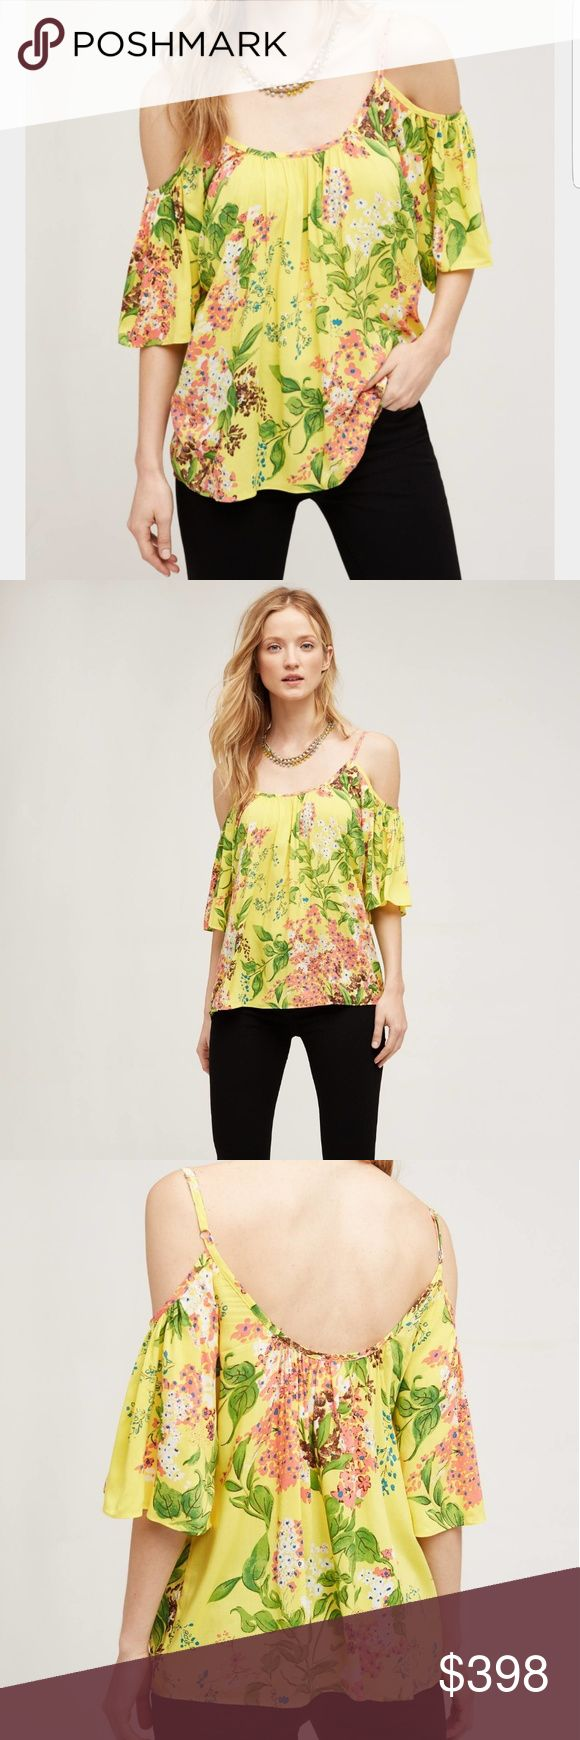 ANTHROPOLOGIE Plenty Tracy Reese Tai Open Shoulder ANTHROPOLOGIE Plenty Tracy Reese Tai Open Shoulder Top Tee  Sz M  Not for Sale Anthropologie Tops